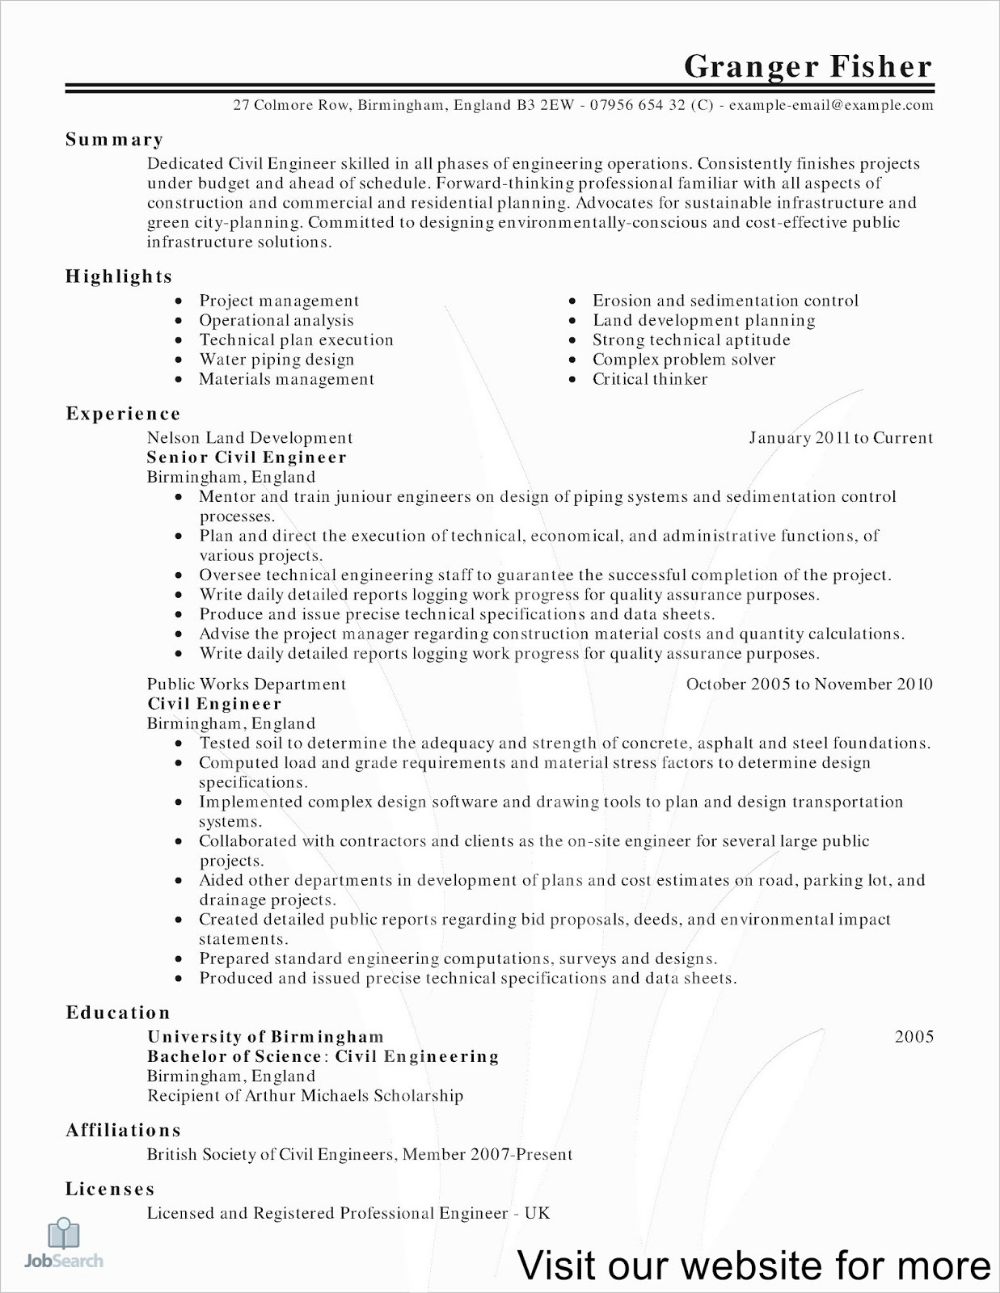 Gym Manager Resume Examples Gym Manager Resume Objective 2020 In 2020 Resume Template Resume Examples Functional Resume